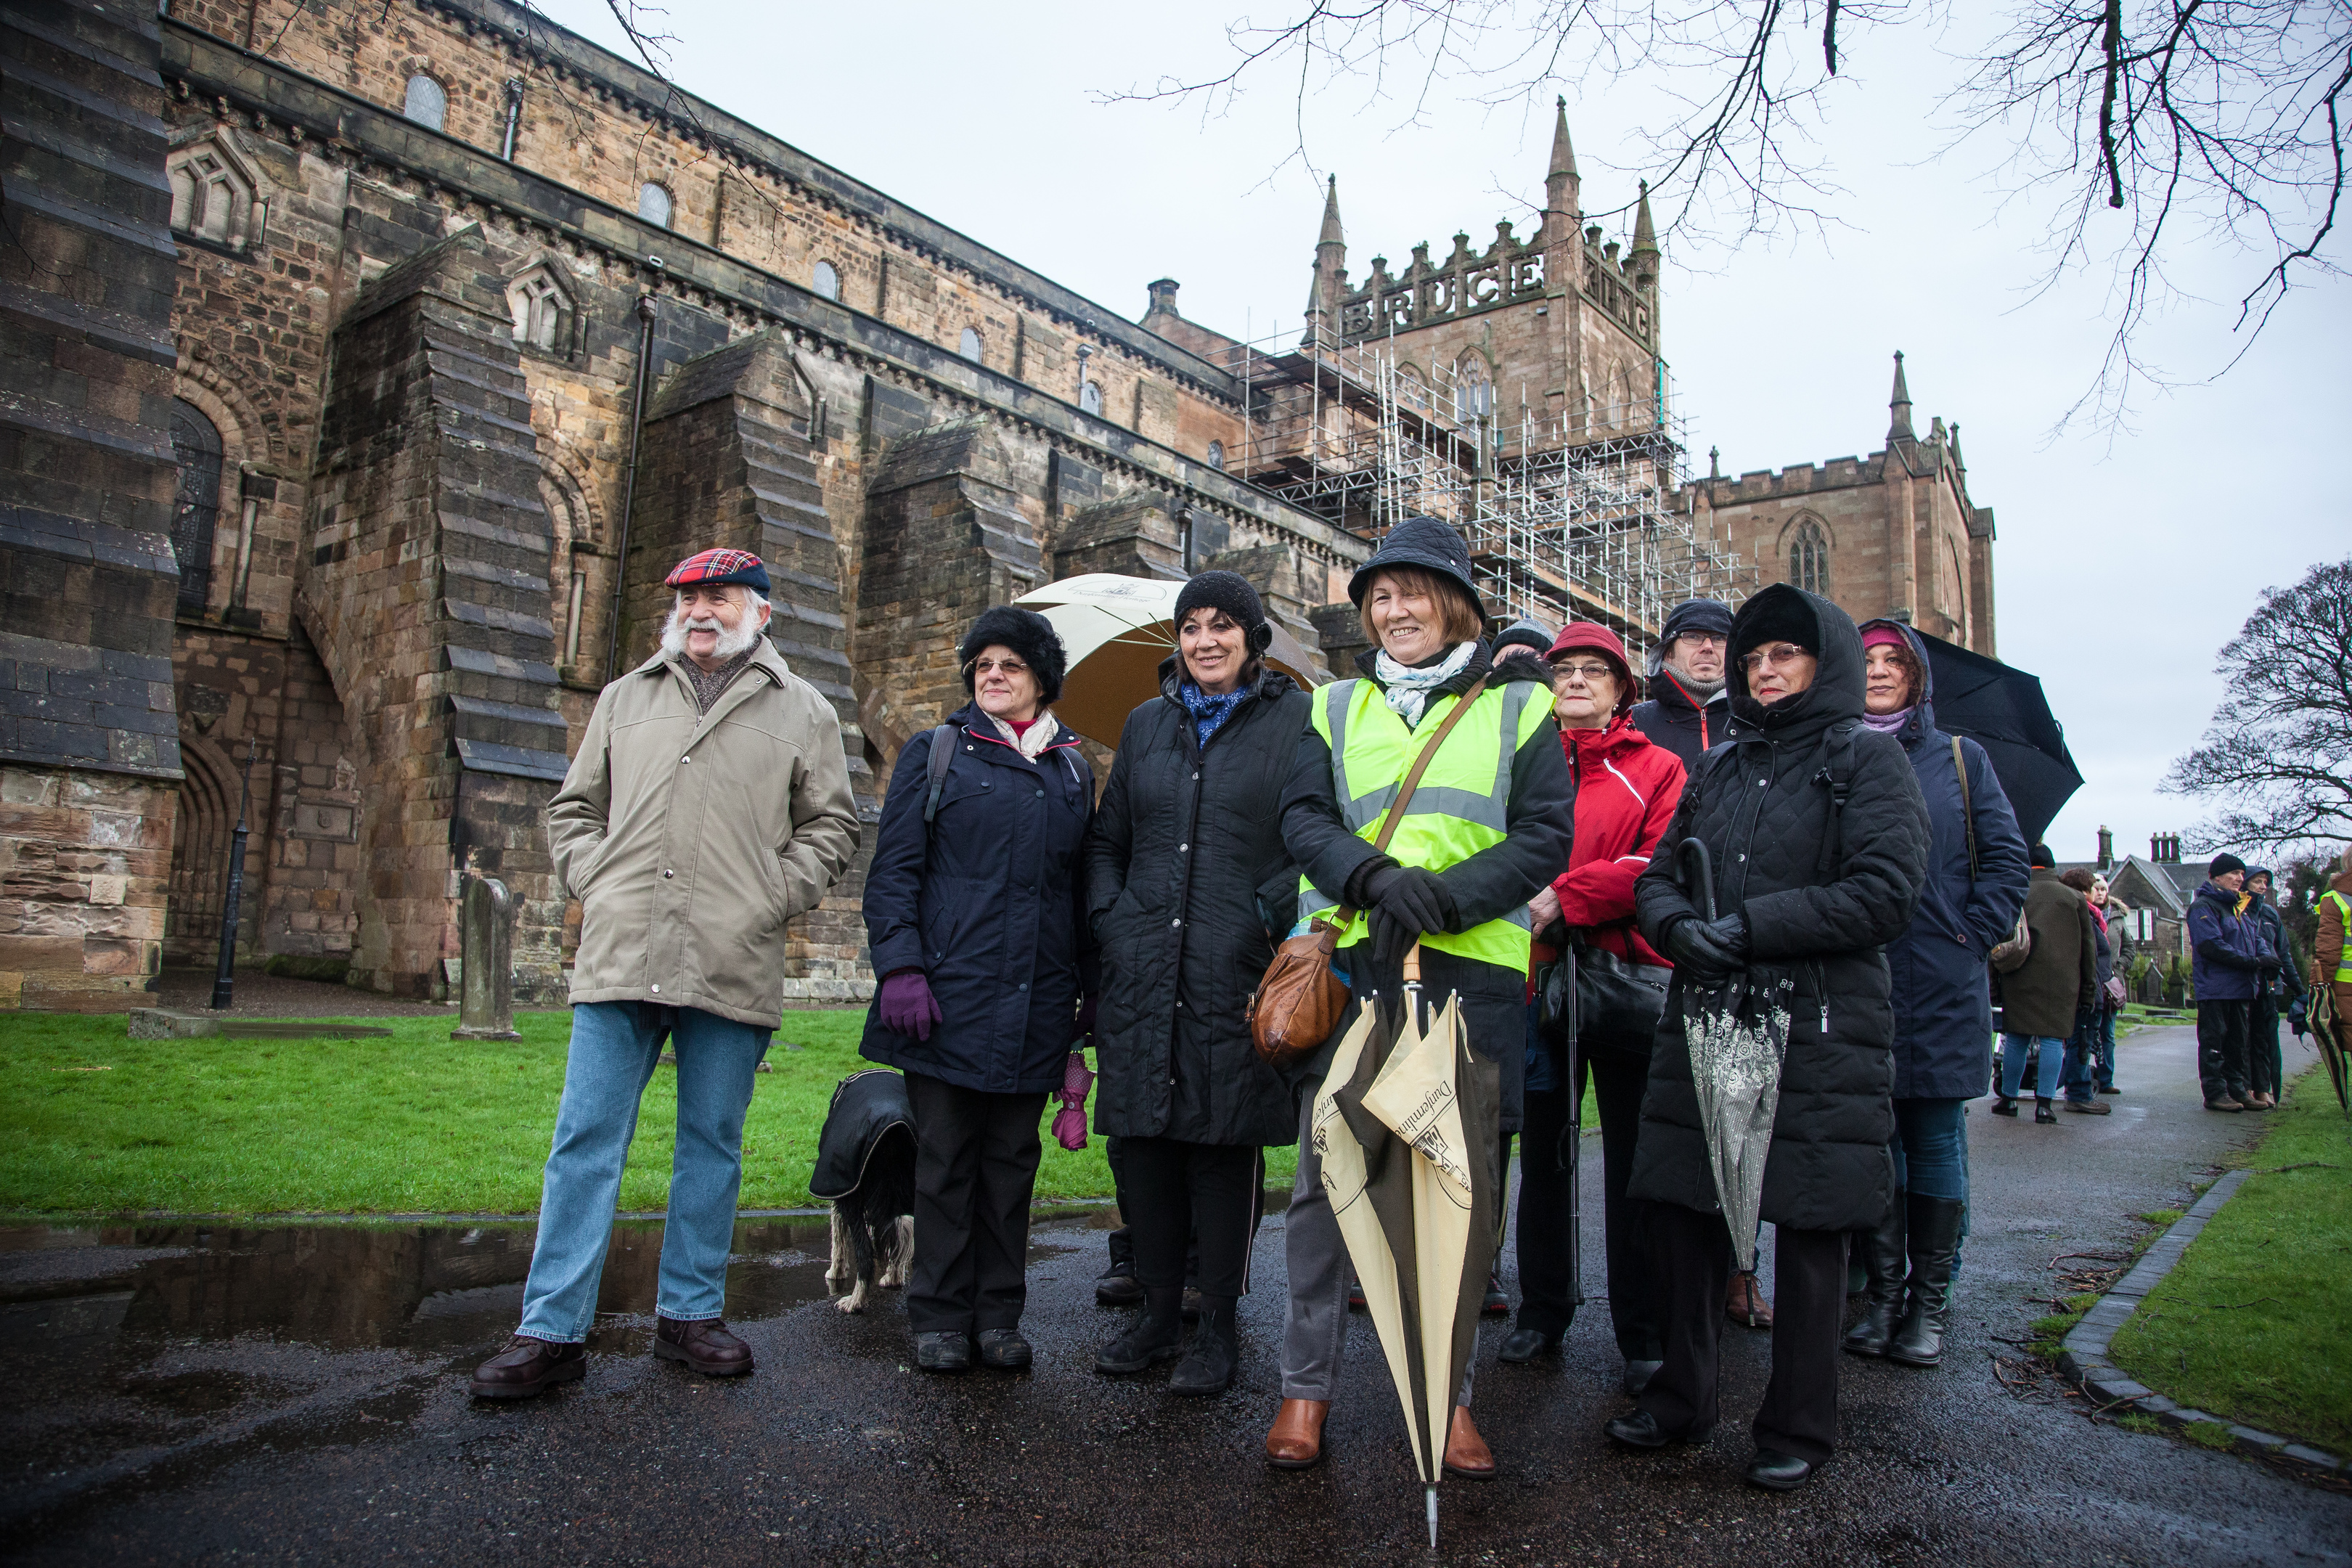 Guide Elaine Campbell pauses at Dunfermline Abbey as she leads a historical guided walk in Dunfermline